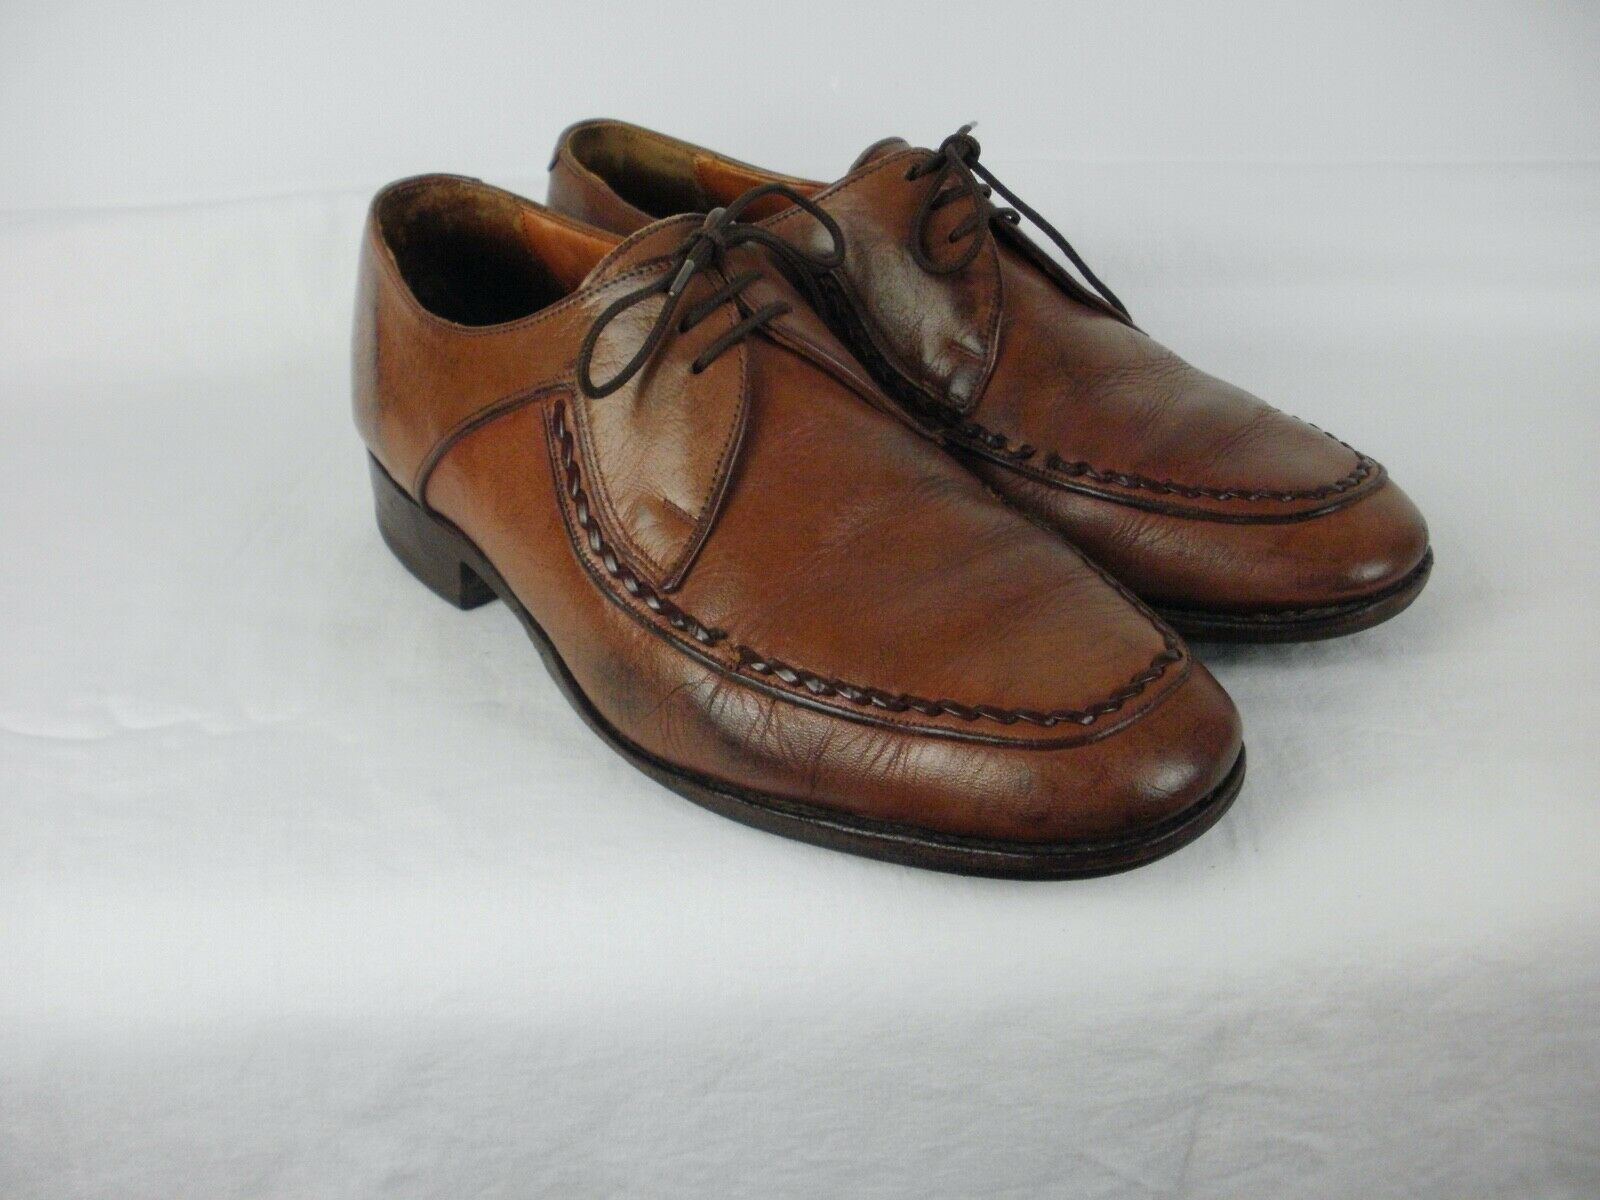 A PAIR OF MENS LIGHT BROWN VINTAGE LOAKE LEATHER SHOES SIZE UK 8.